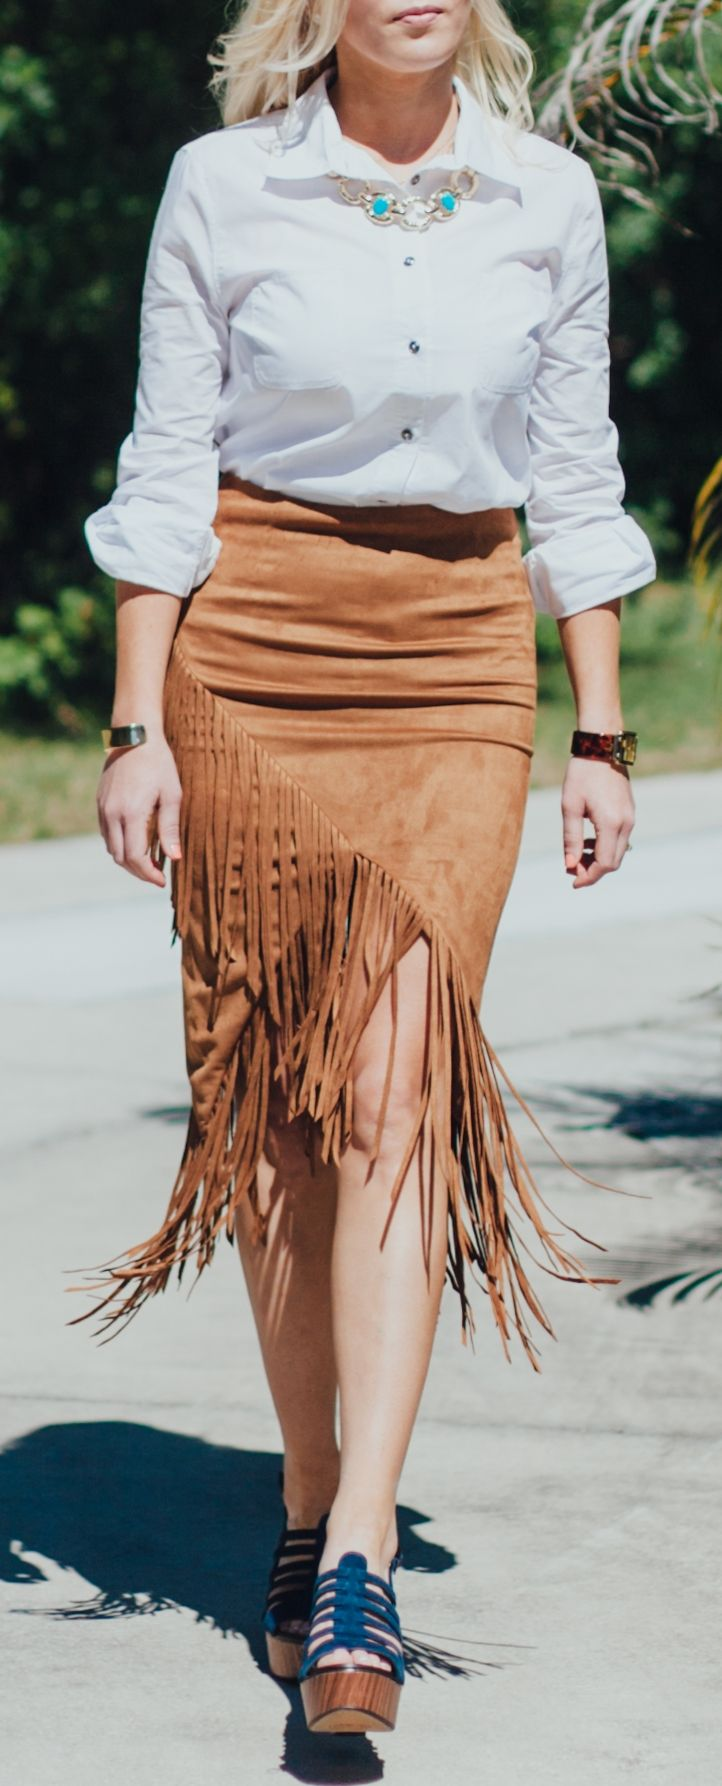 A fabulous suede skirt is a must-have for spring, and why not add a little fringe?! We love this skirt paired with crisp tops and boho accessories! Try a wooden-heeled shoe and turquoise accents! Would you wear this look?